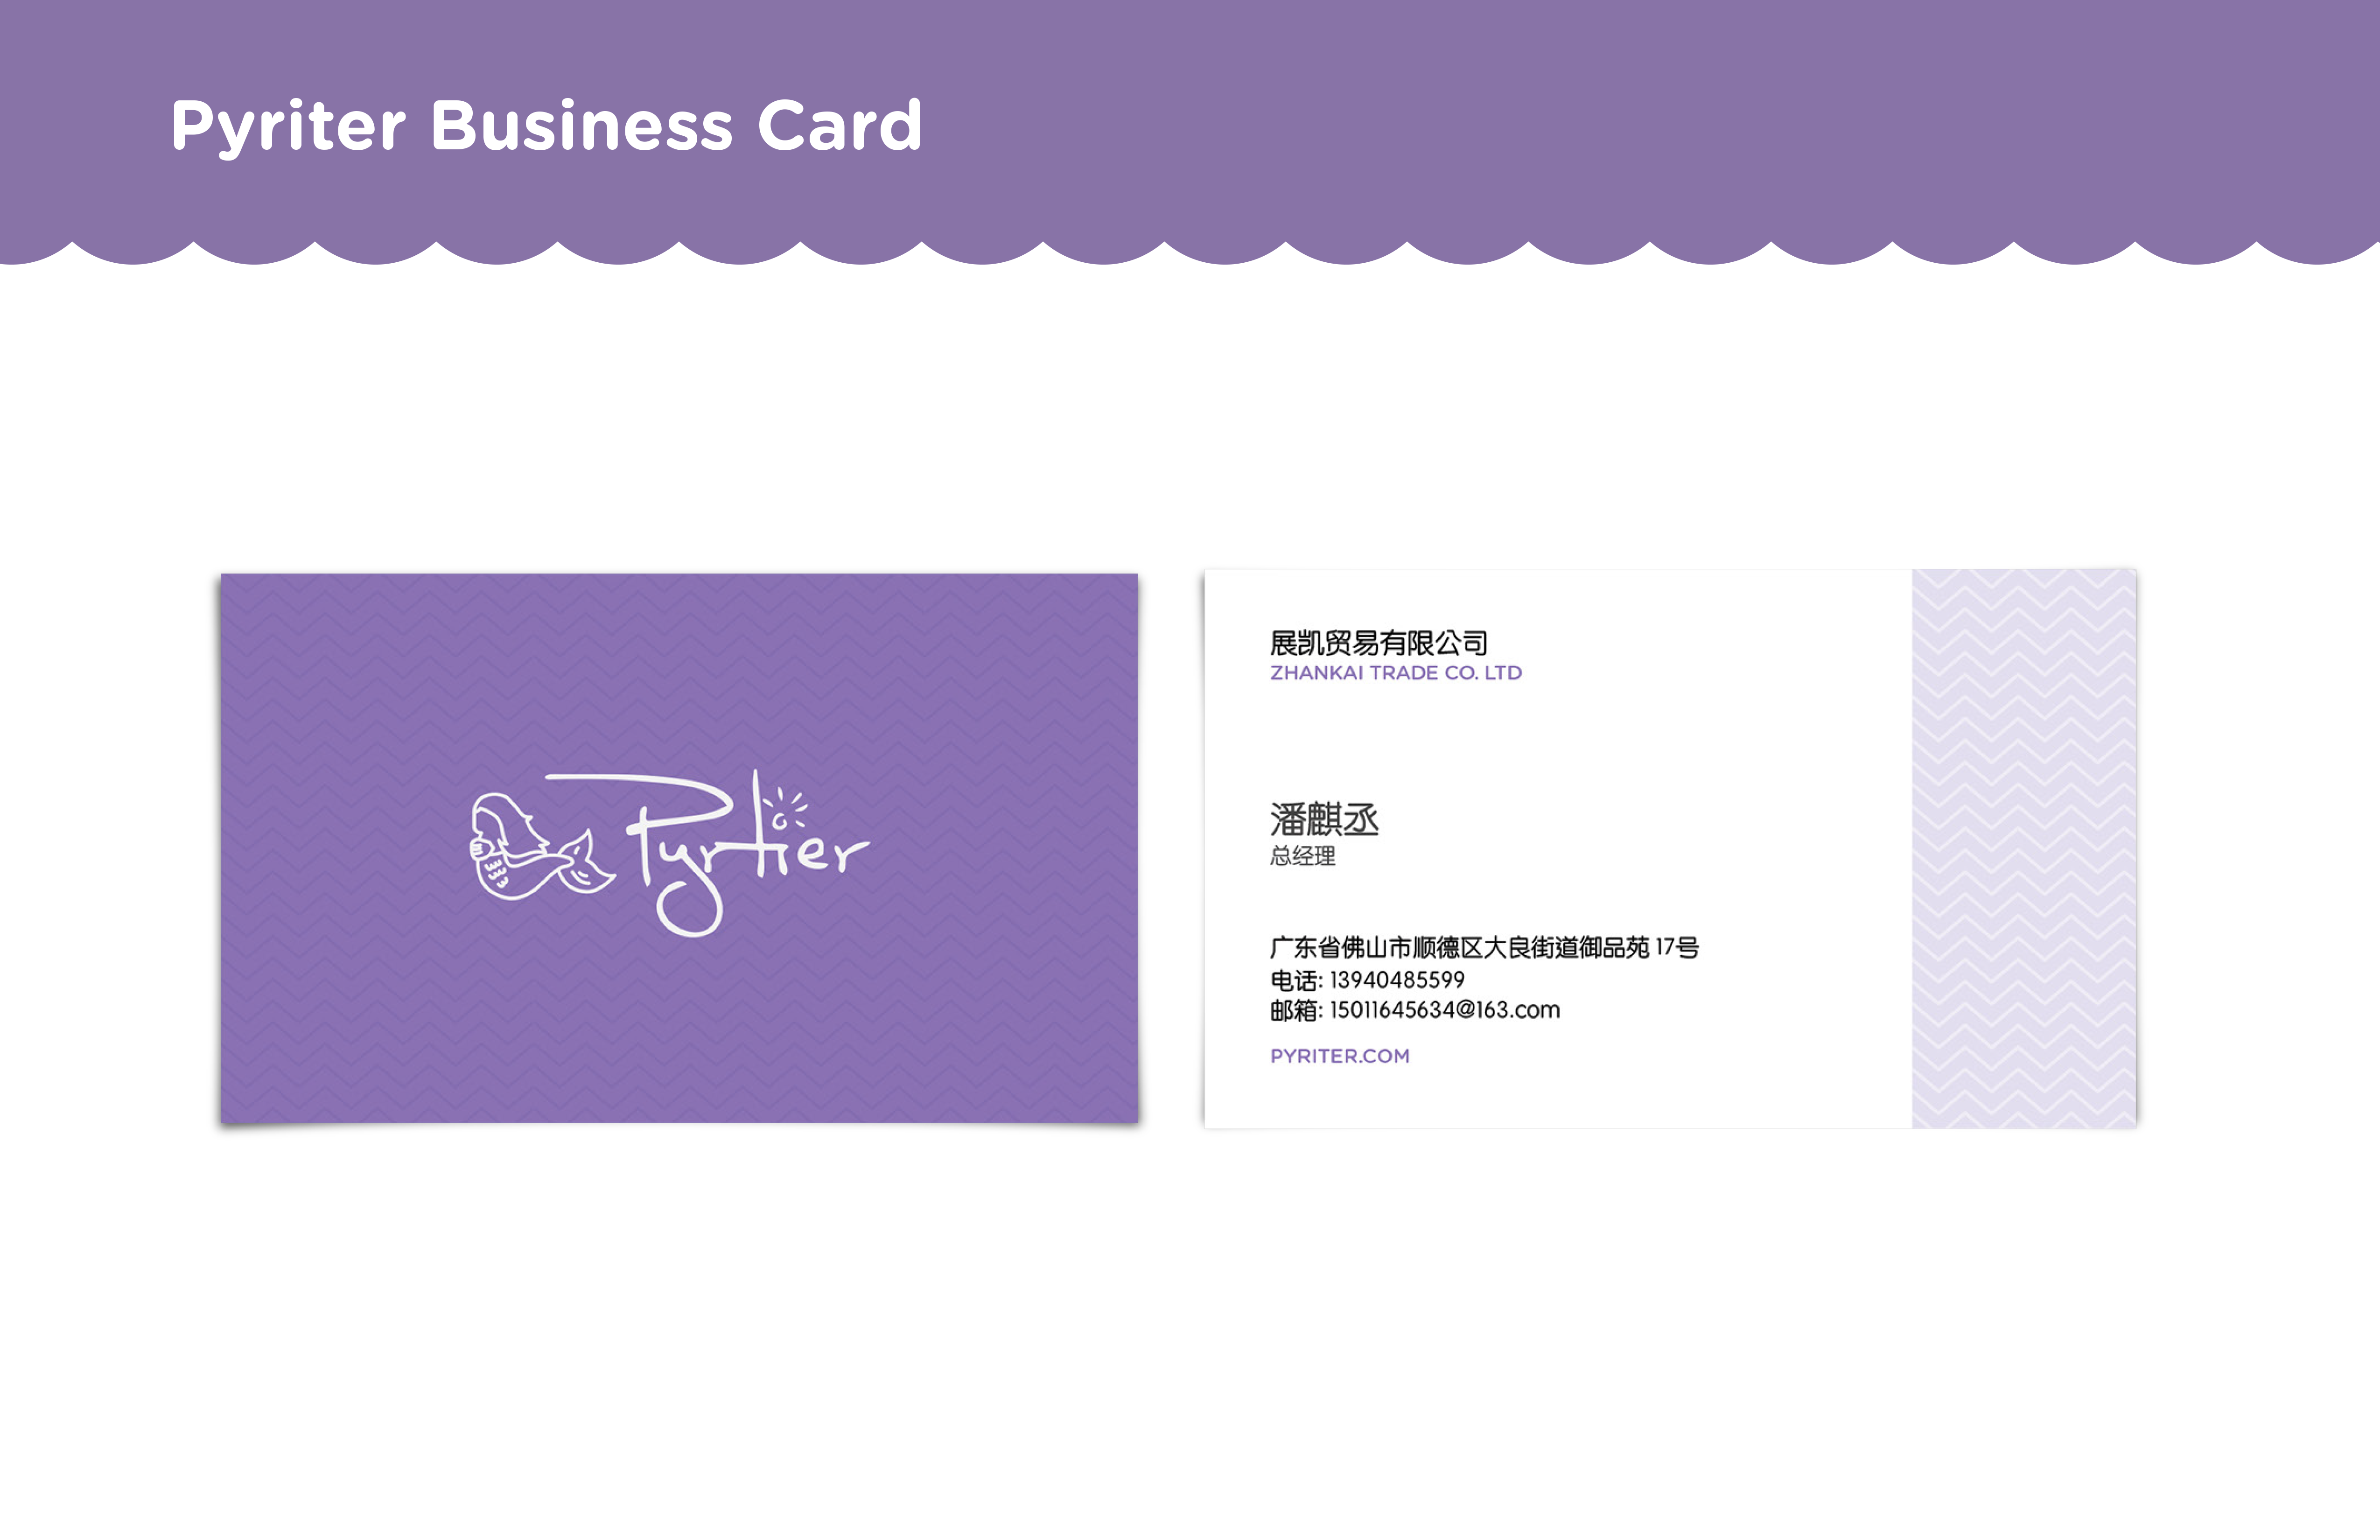 Pyriter Business Card Design